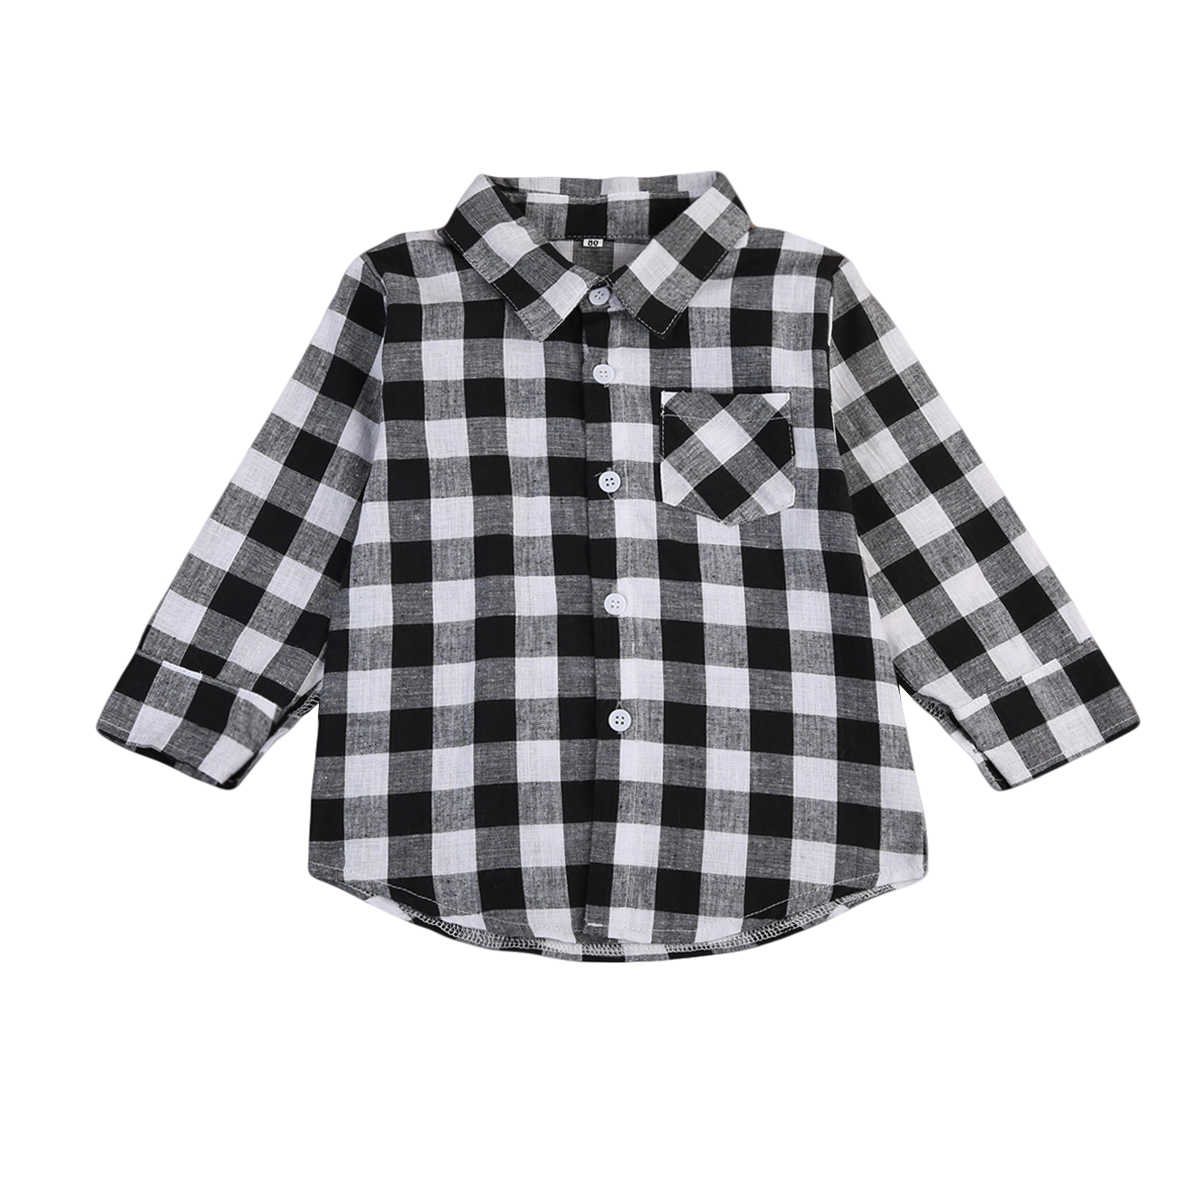 Fashion Toddler Baby Boys Girls Plaid Checked Long Sleeve Shirt Tops Clothes 1pc